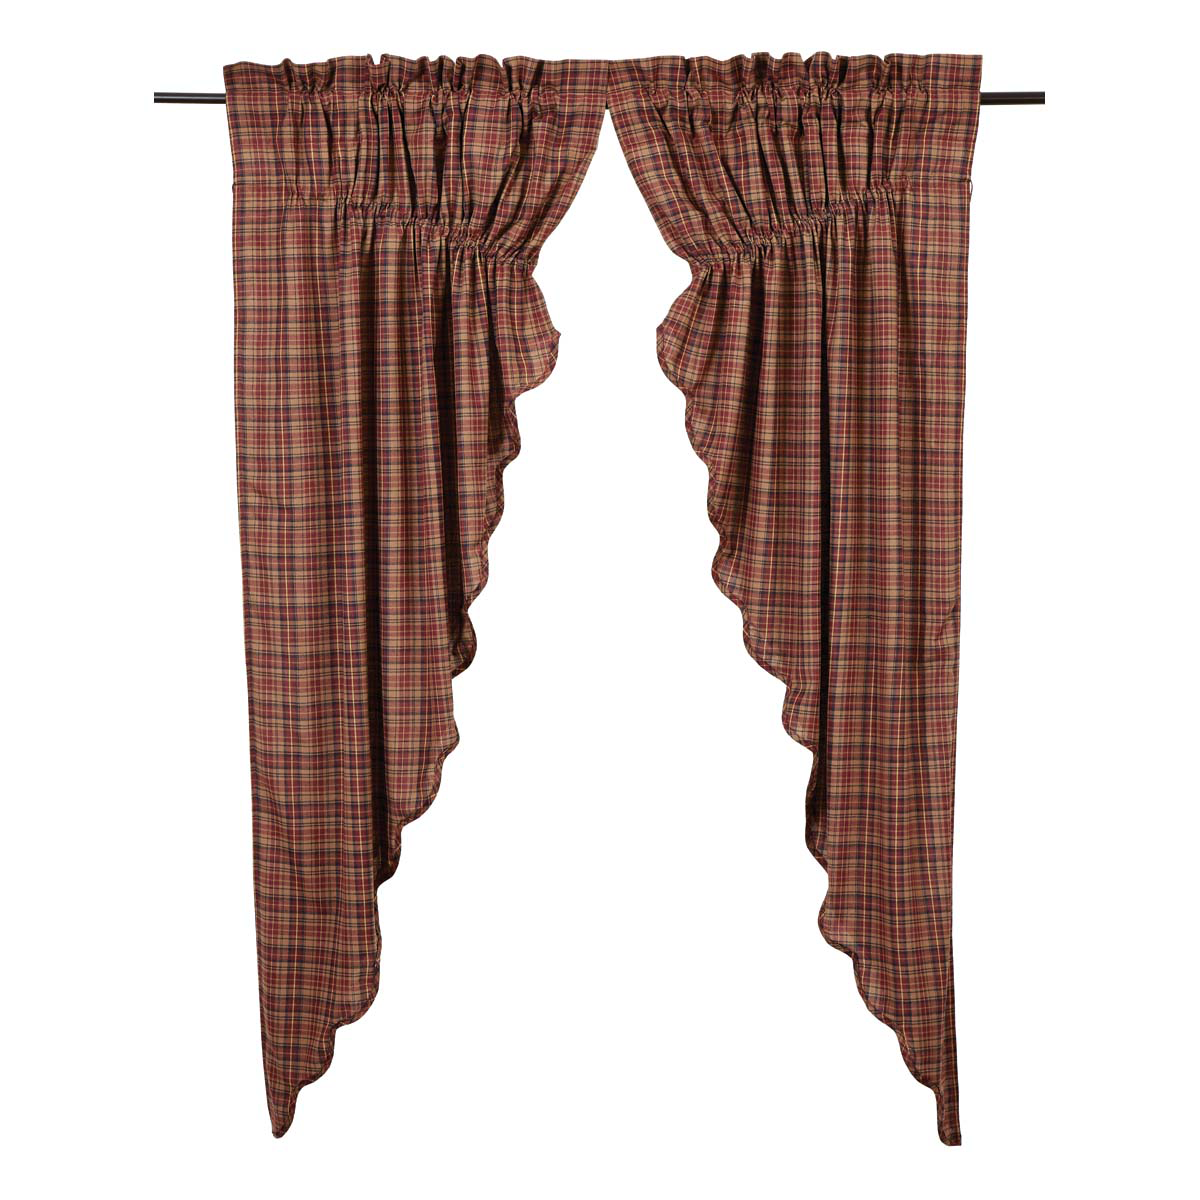 "Parker Prairie Curtains - Scalloped Lined 63x36x18"" - Vhc Brands"